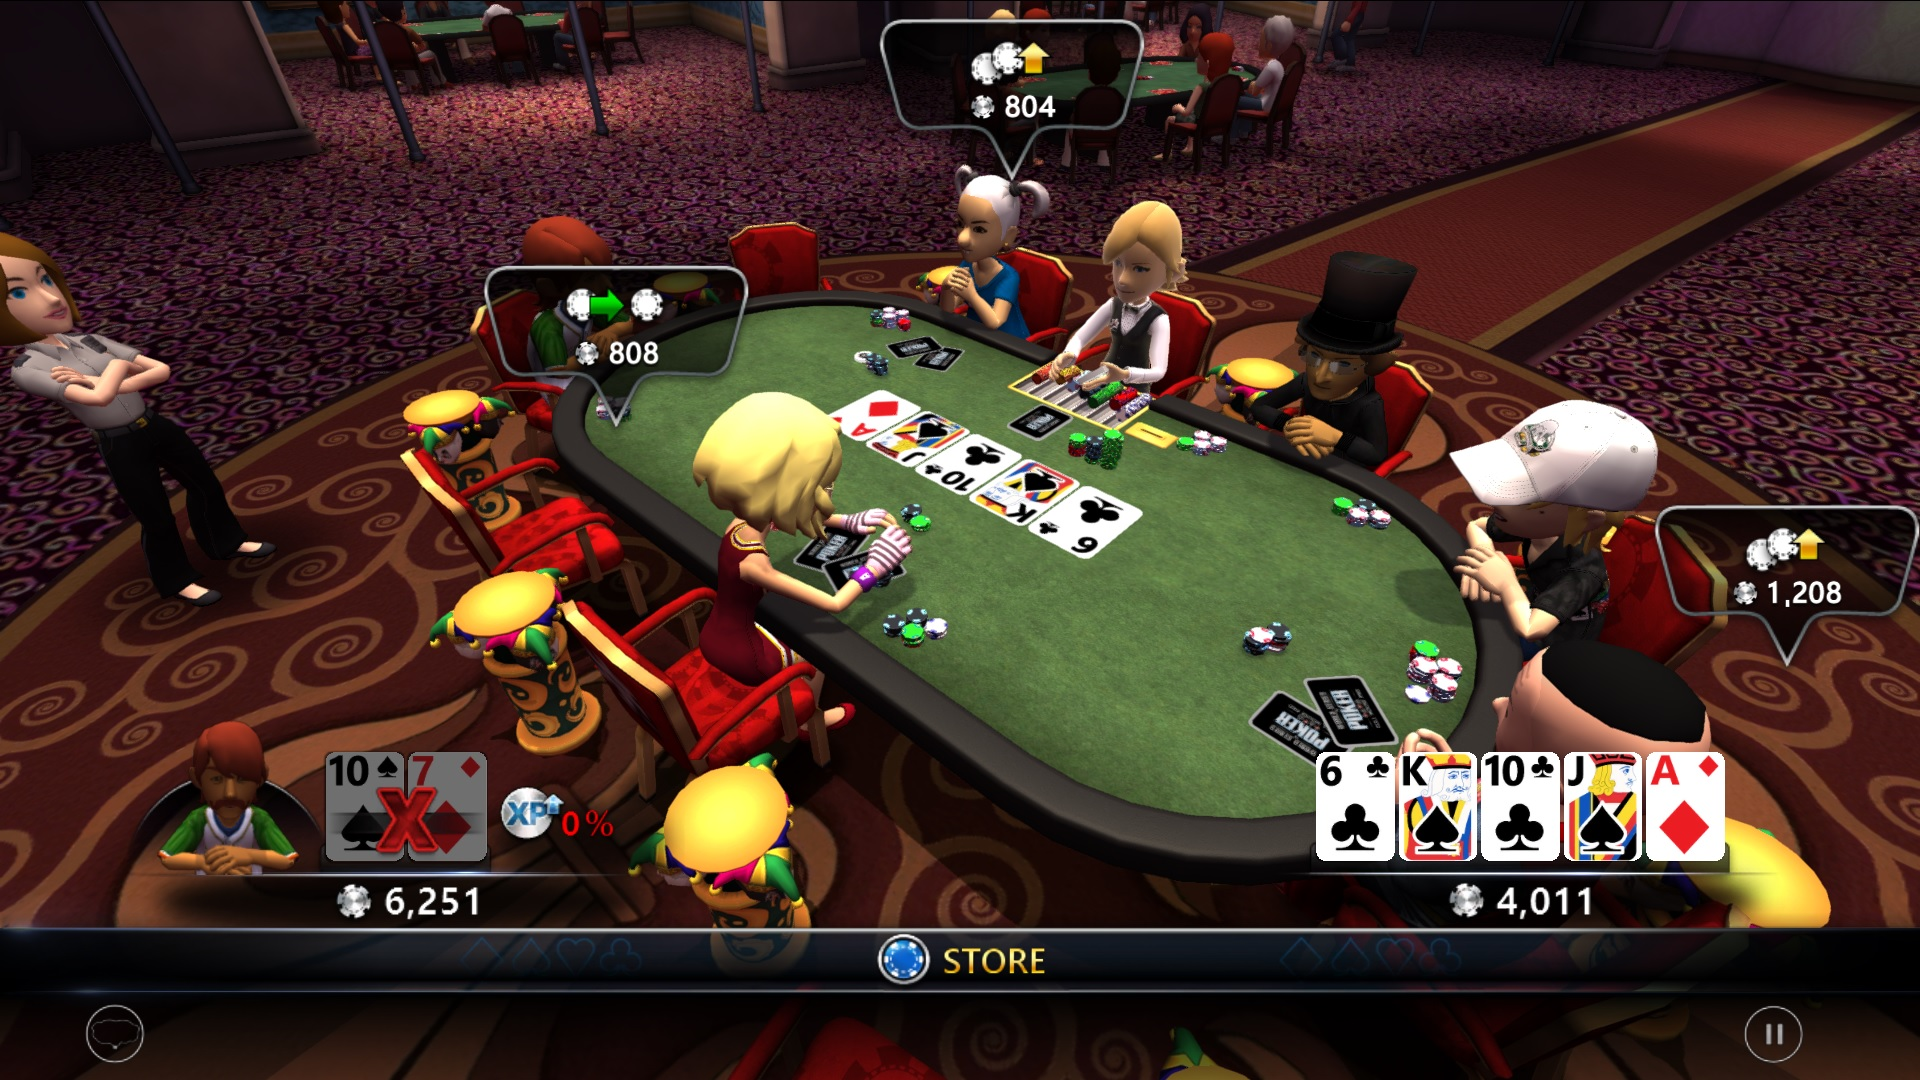 8 player poker games